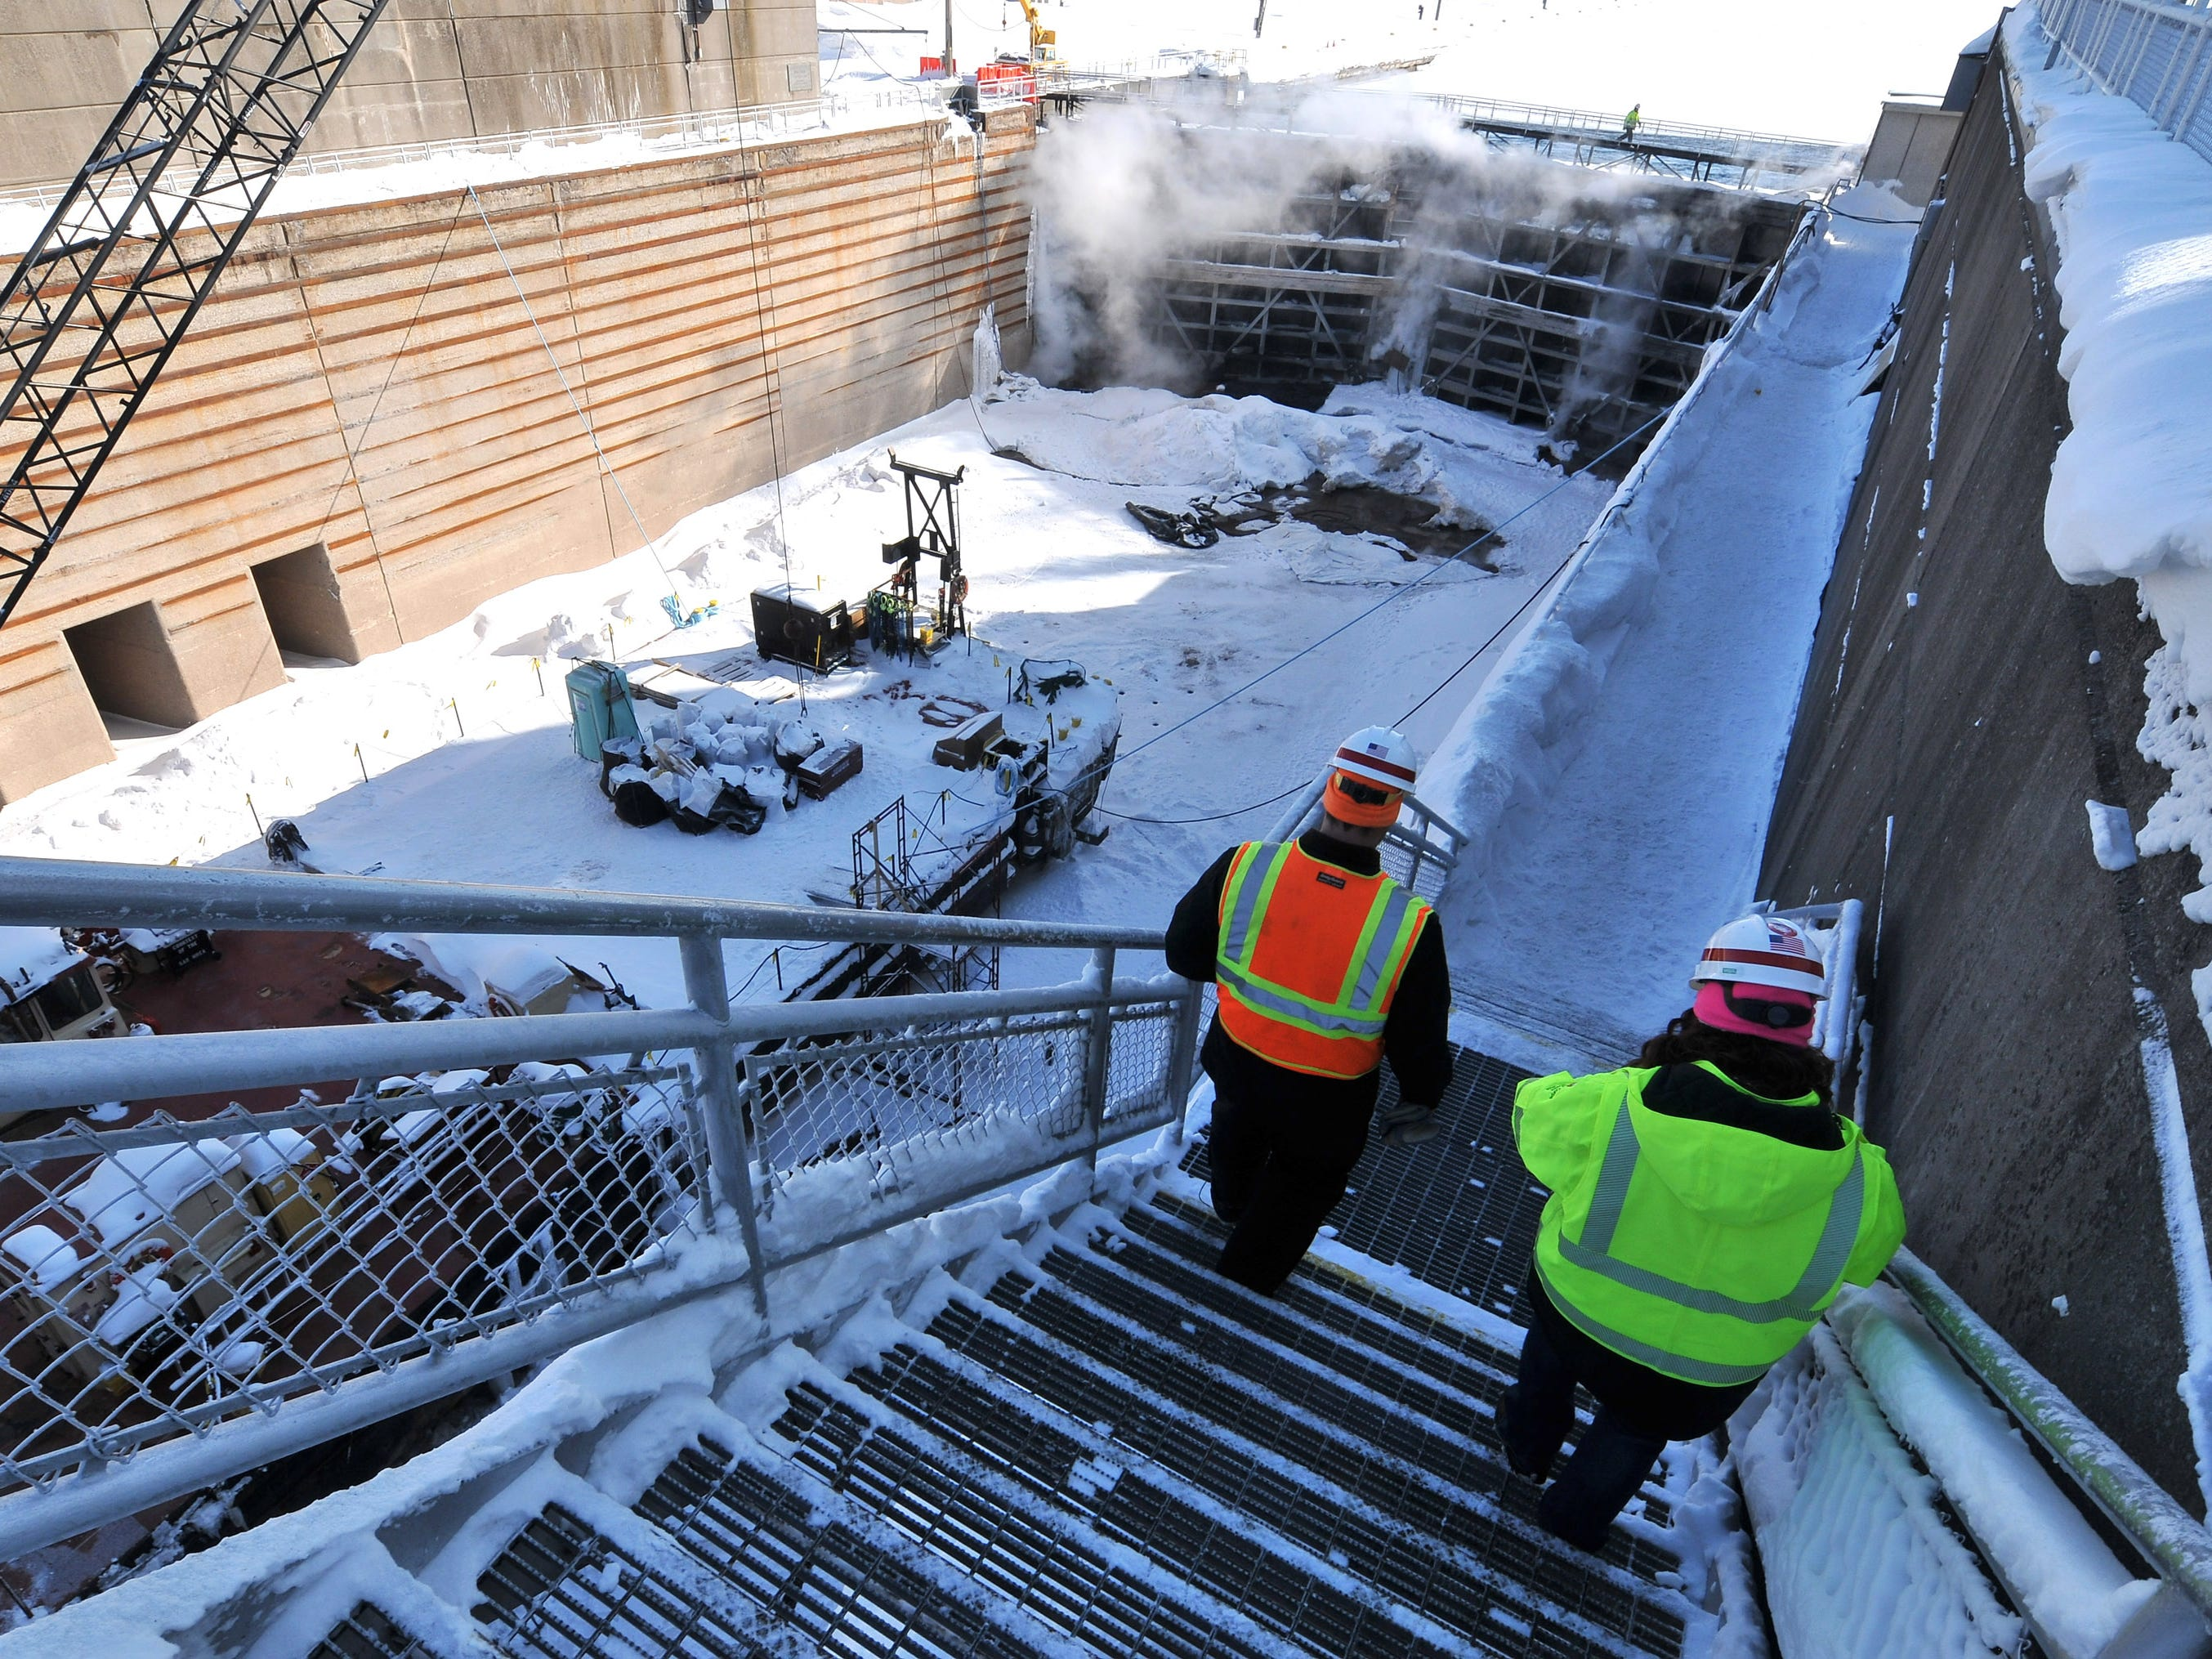 U.S. Corps of Engineers chief of maintenance Jeff Harrington, left, and chief of operations LeighAnn Ryckeghen walk down into the Poe Lock Tuesday, March 12, 2019.